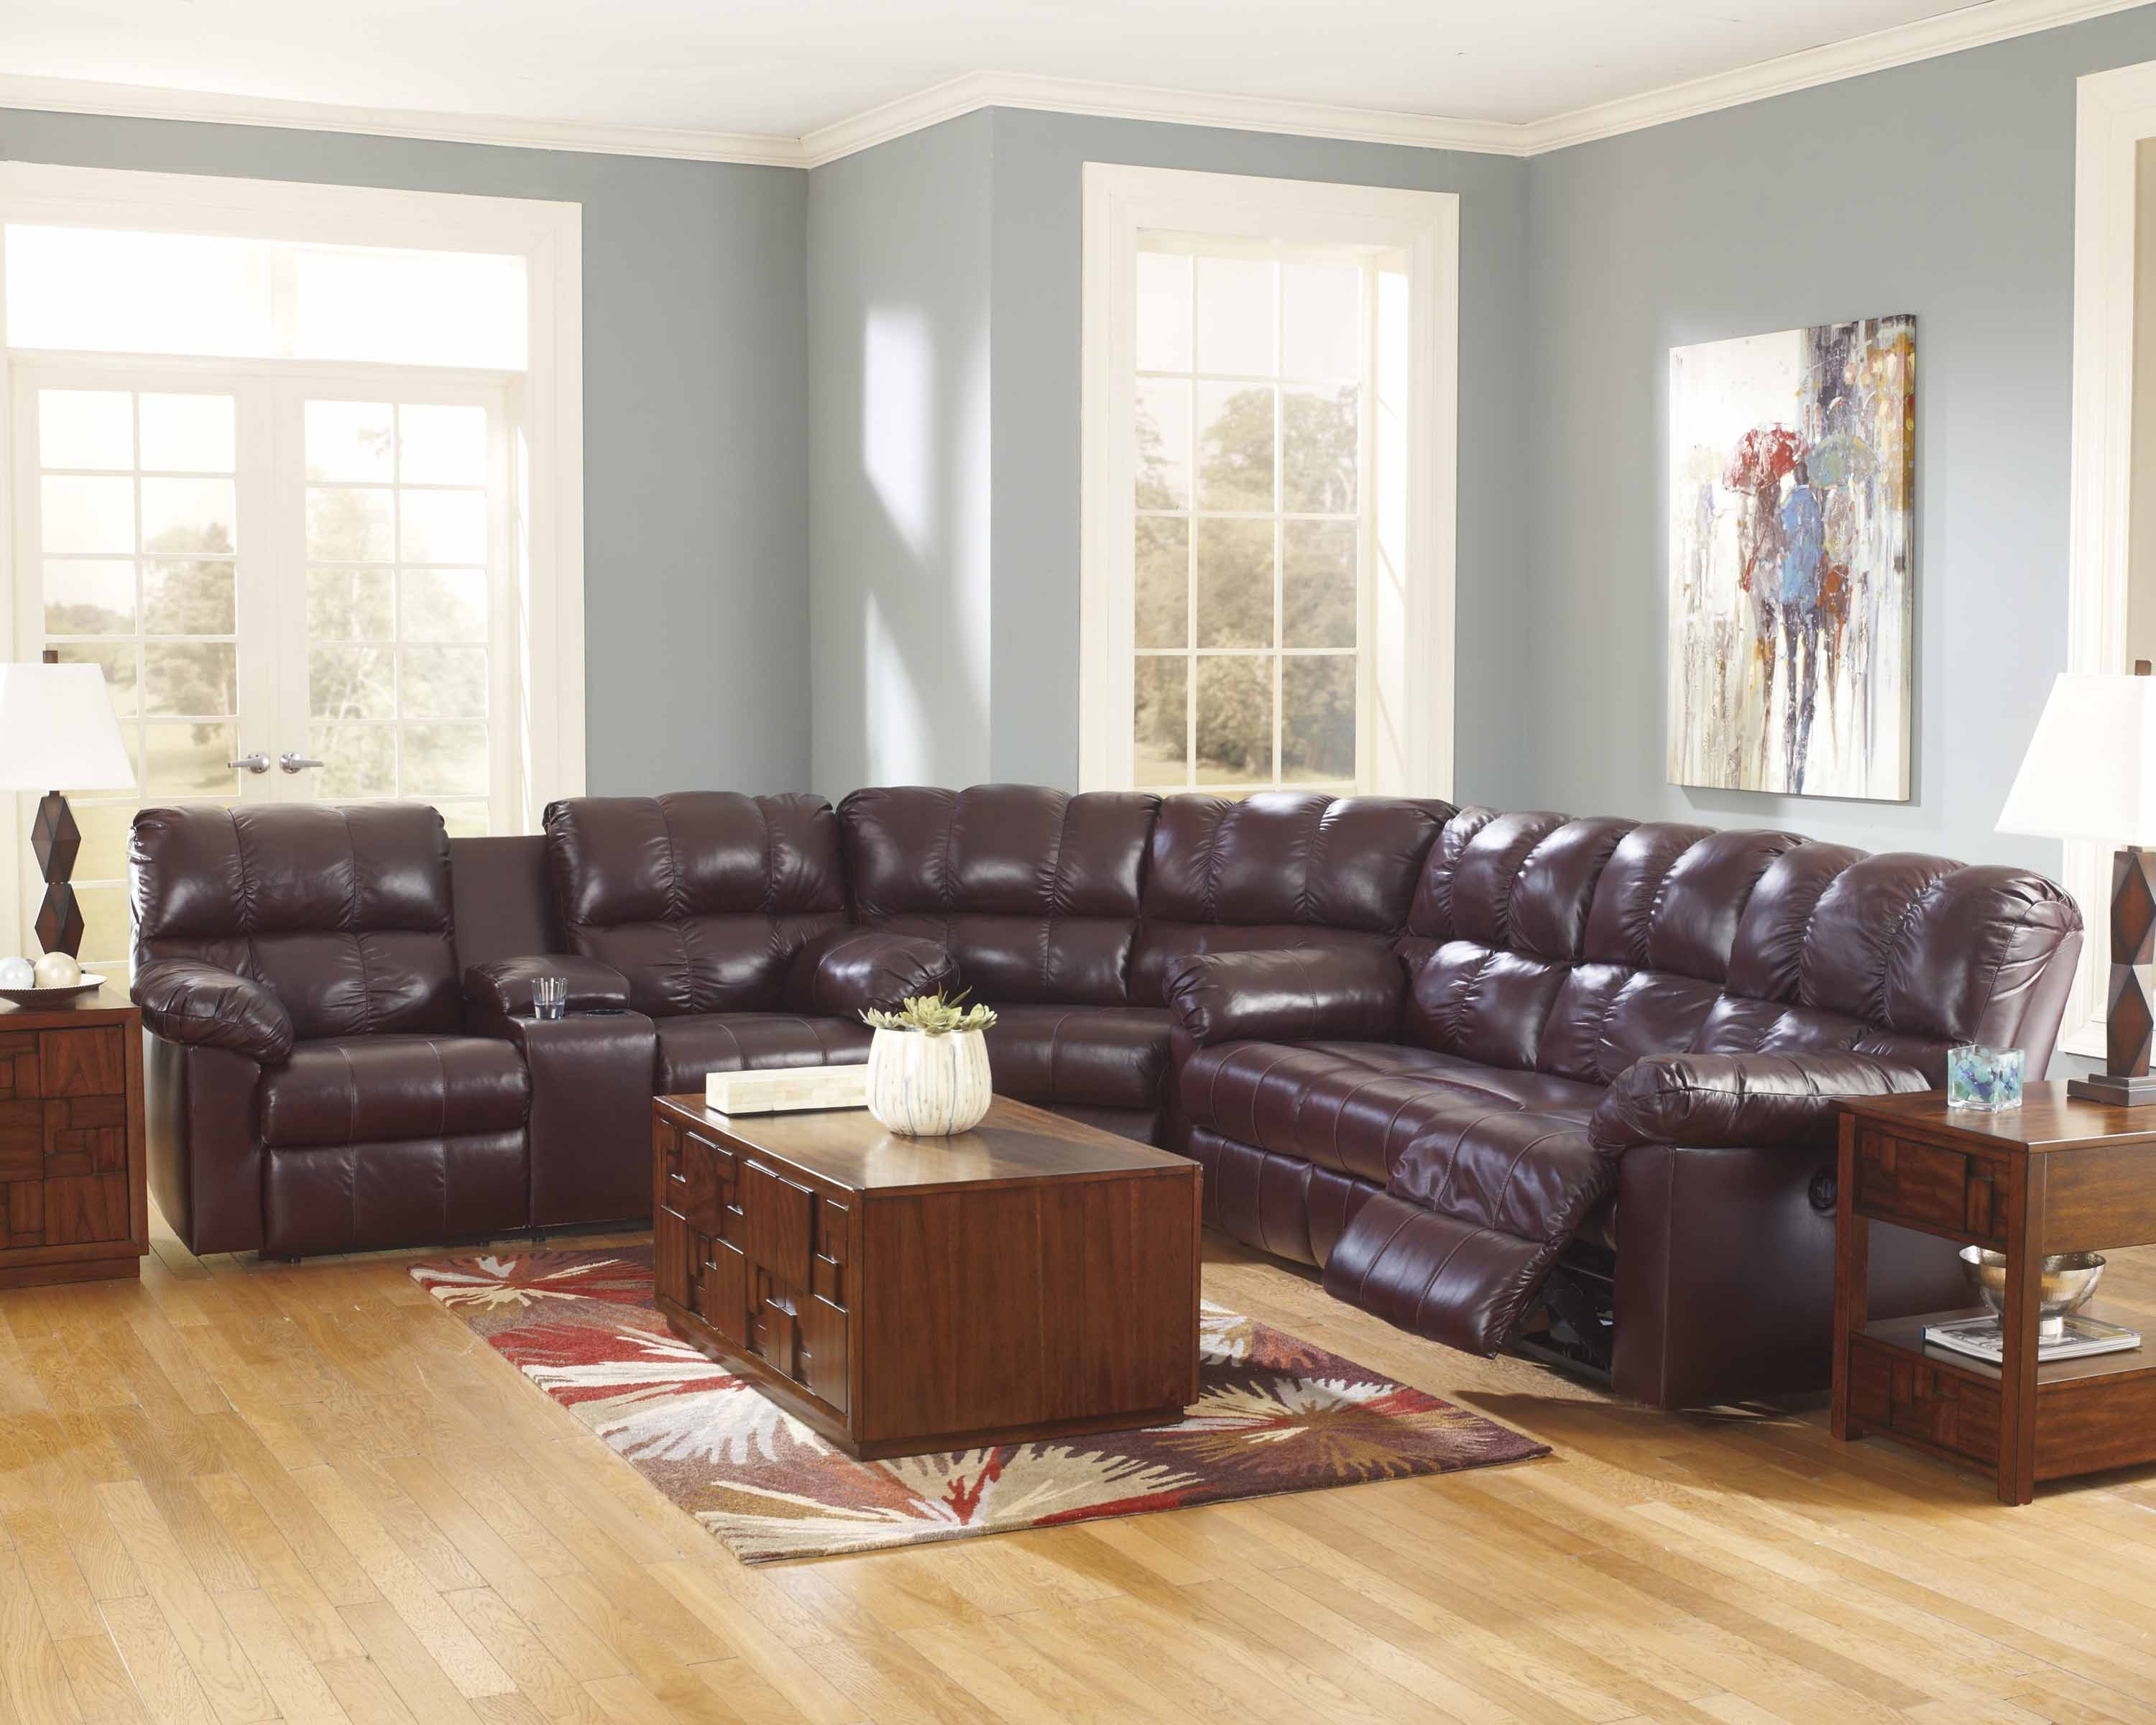 American Freight Sectionals Pertaining To Erie Pa Sectional Sofas (View 15 of 15)